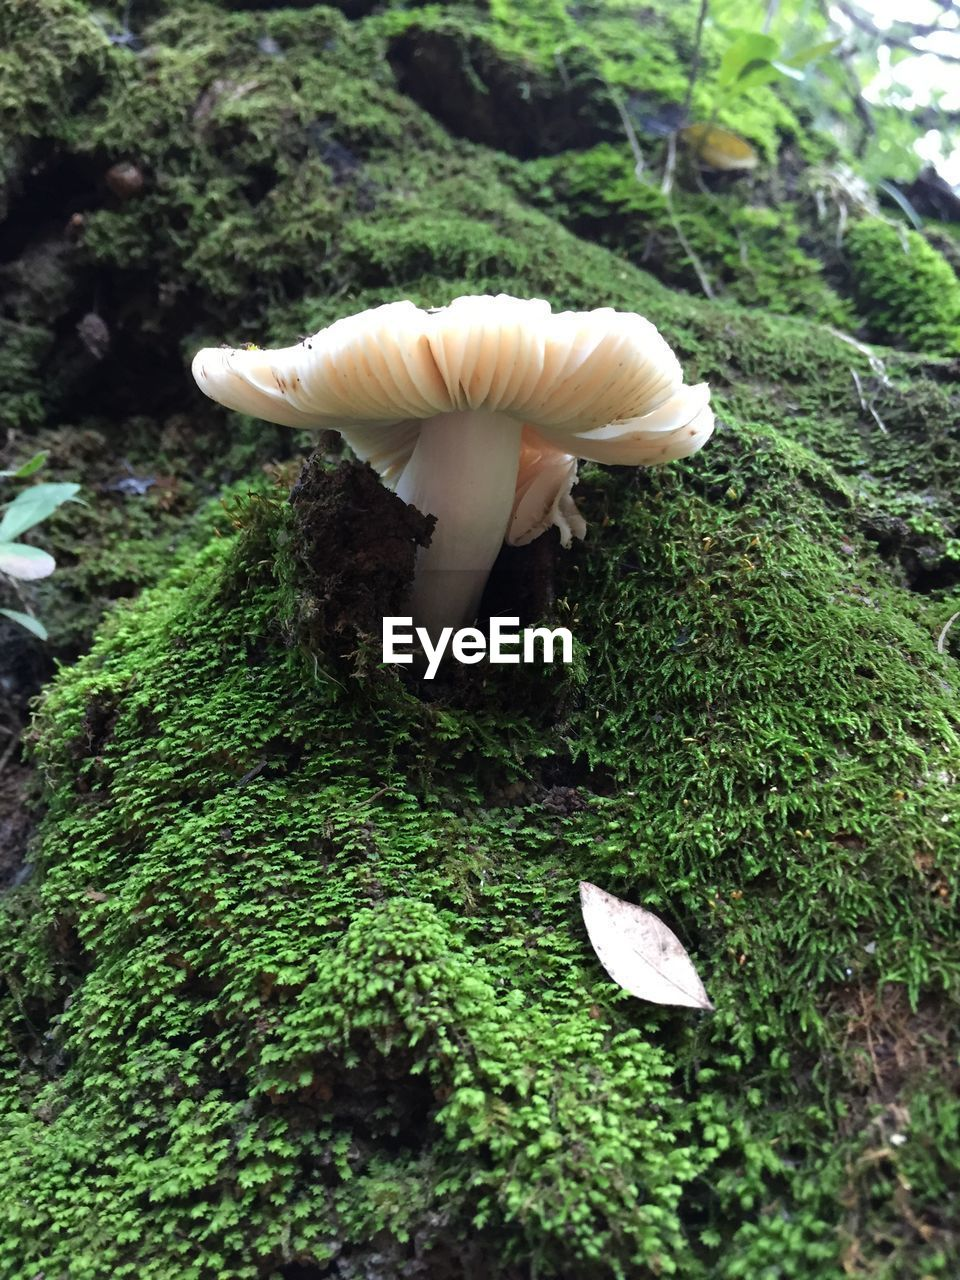 mushroom, fungus, toadstool, vegetable, growth, nature, plant, beauty in nature, green color, food, no people, close-up, edible mushroom, moss, day, land, white color, freshness, vulnerability, fragility, outdoors